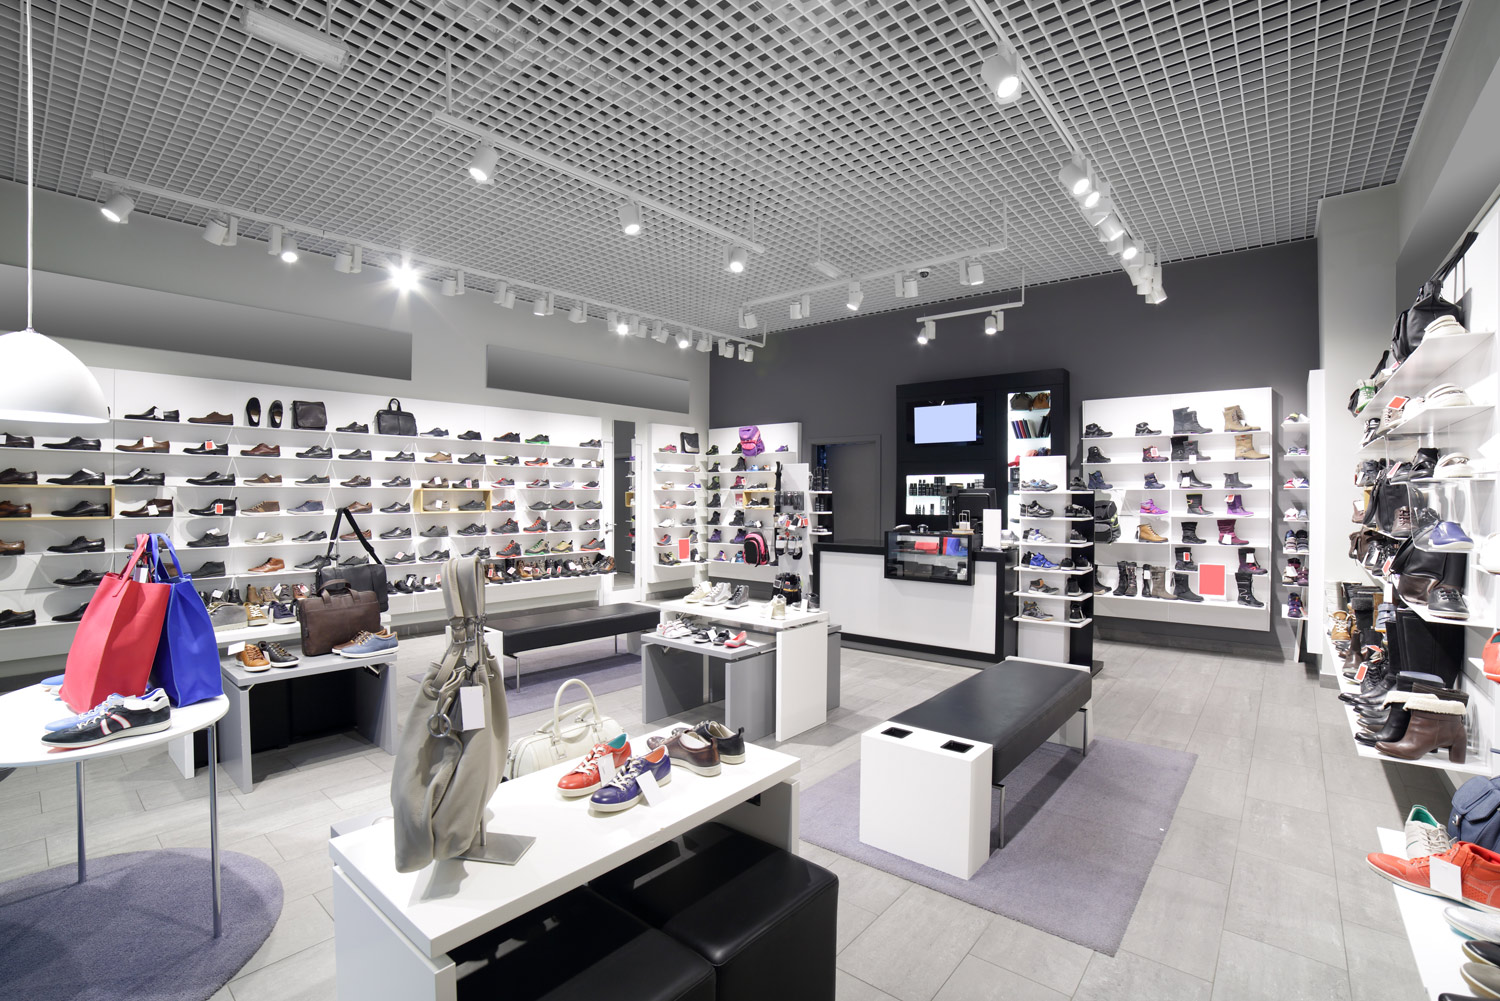 Commercial Electrical Services - High End Retail Sydney